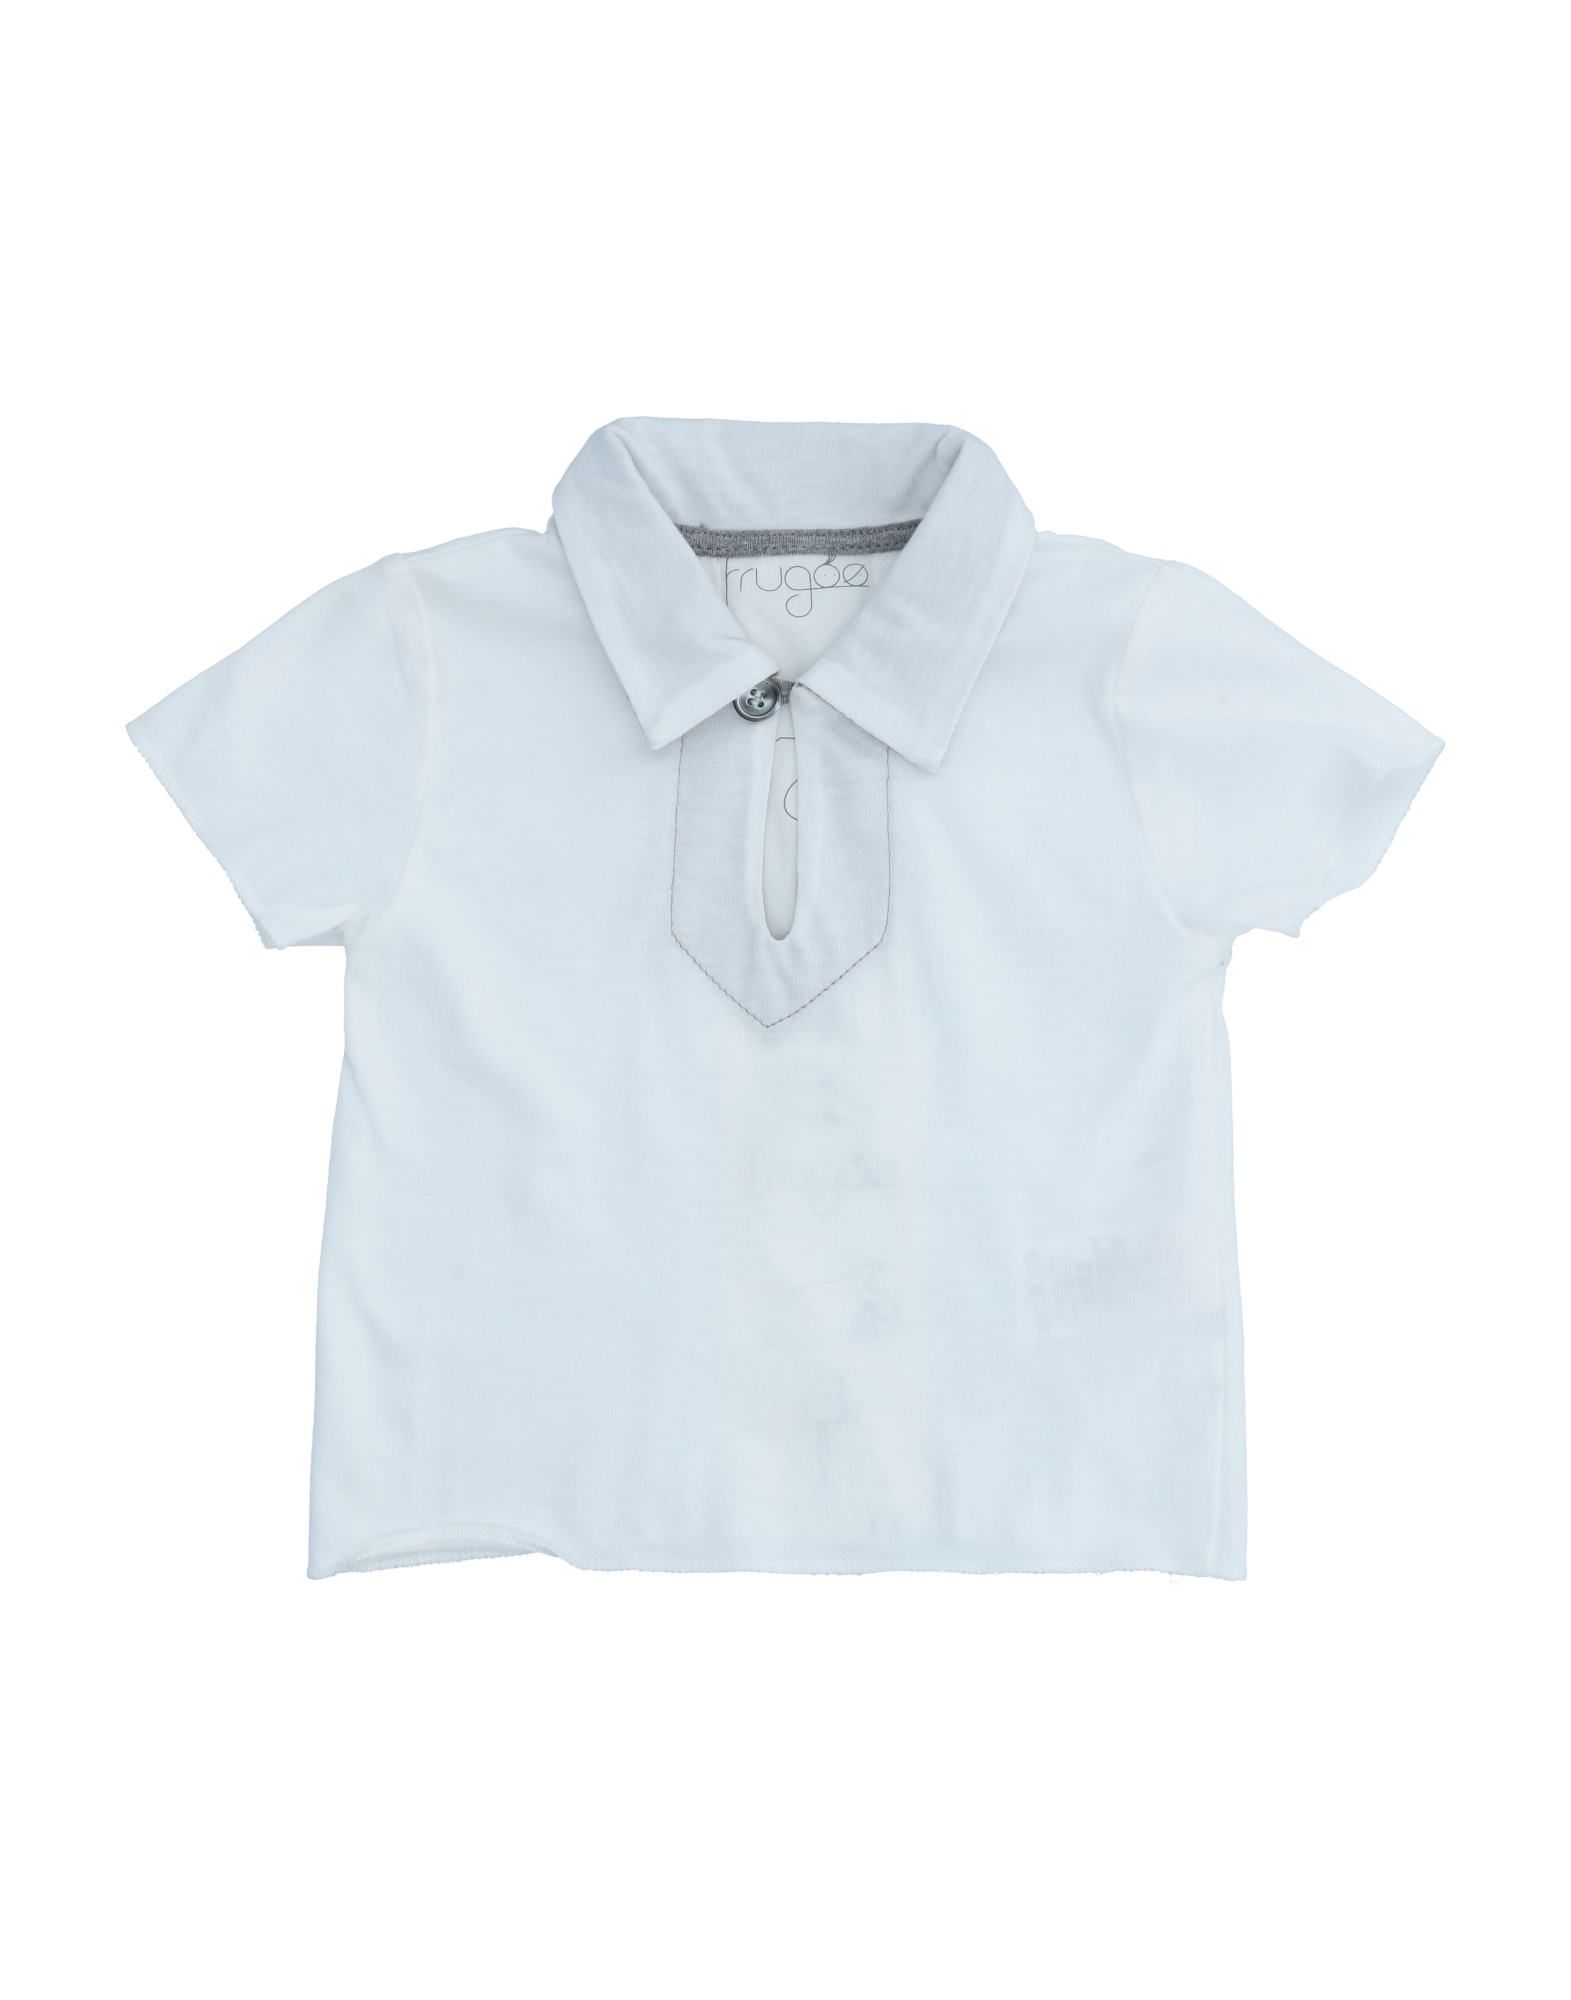 Frugoo Kids' Polo Shirts In White